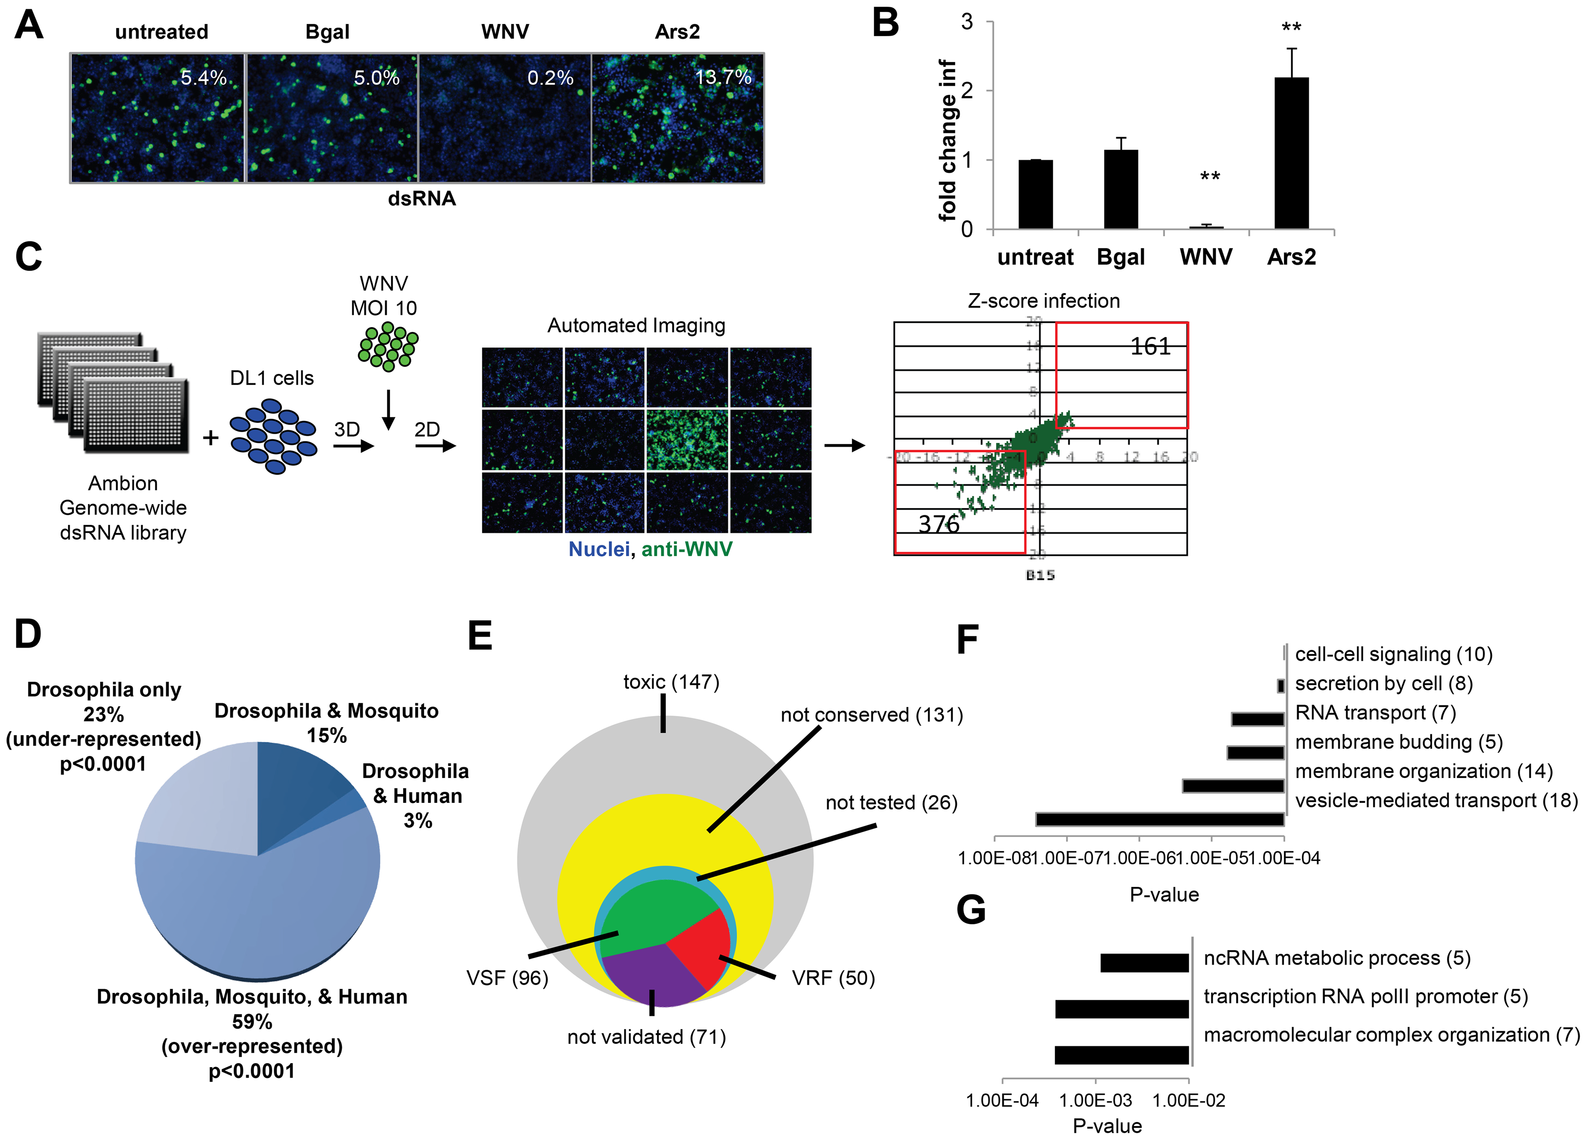 Genome-wide RNAi screen in <i>Drosophila</i> for host factors involved in WNV infection.